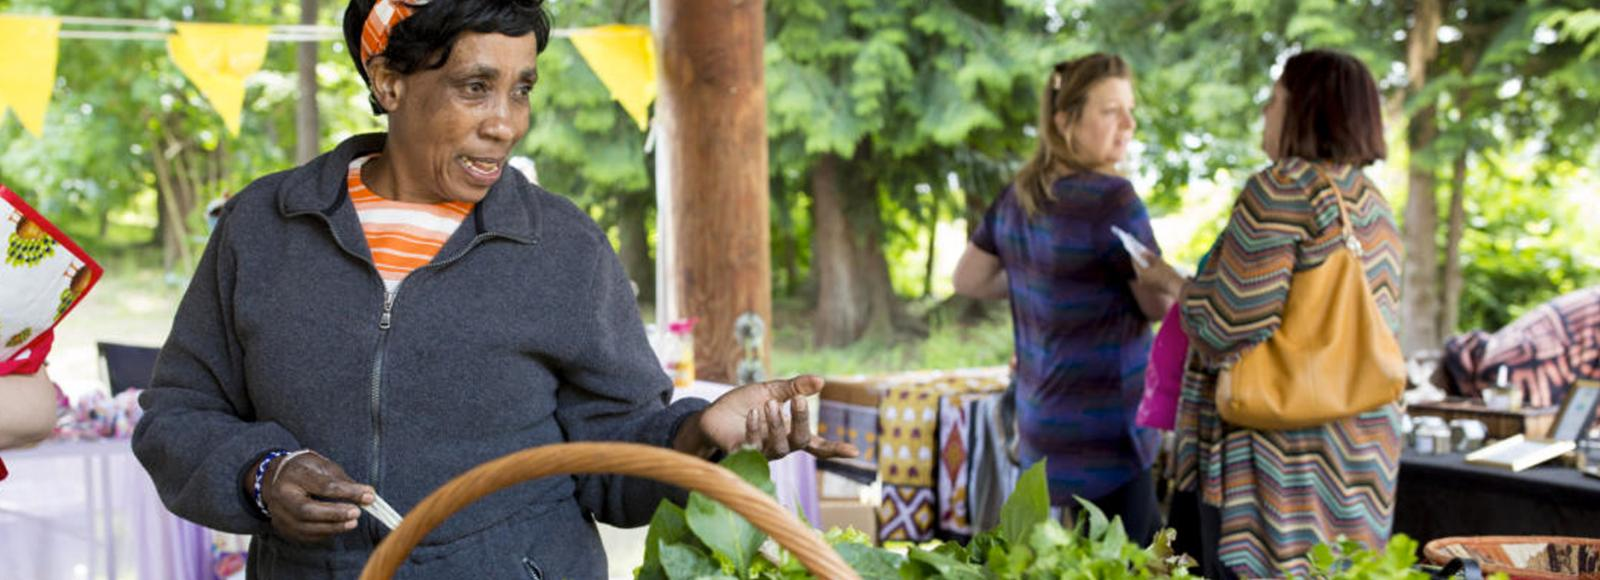 Woman wearing orange headband, grey sweater, and orange shirt gestures to an unseen person from behind a table of greens in a farmers market setting.